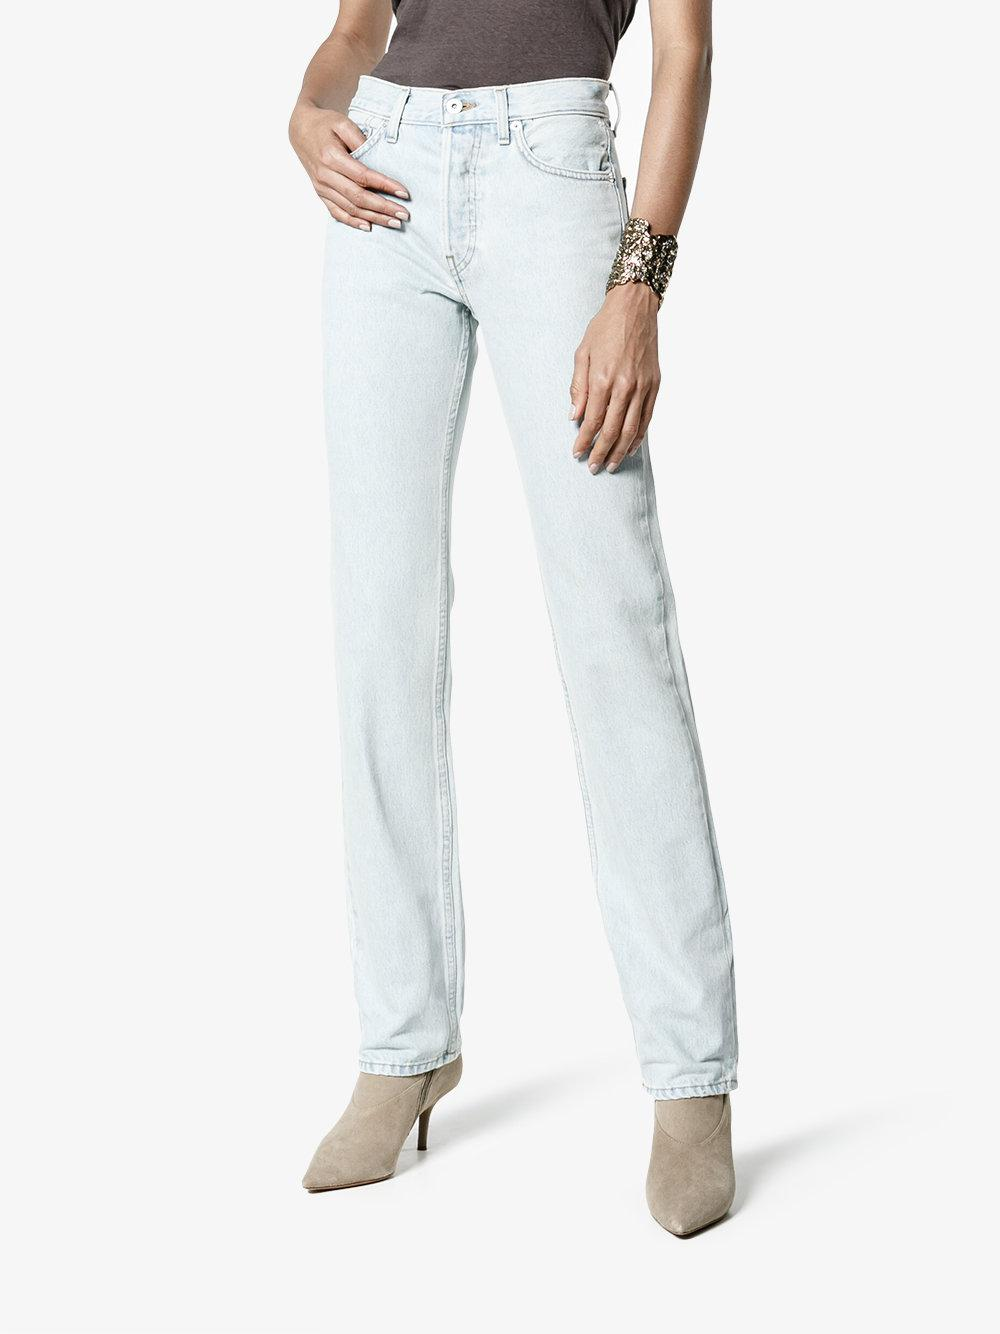 Yeezy Denim Mid Rise Straight Jeans in White